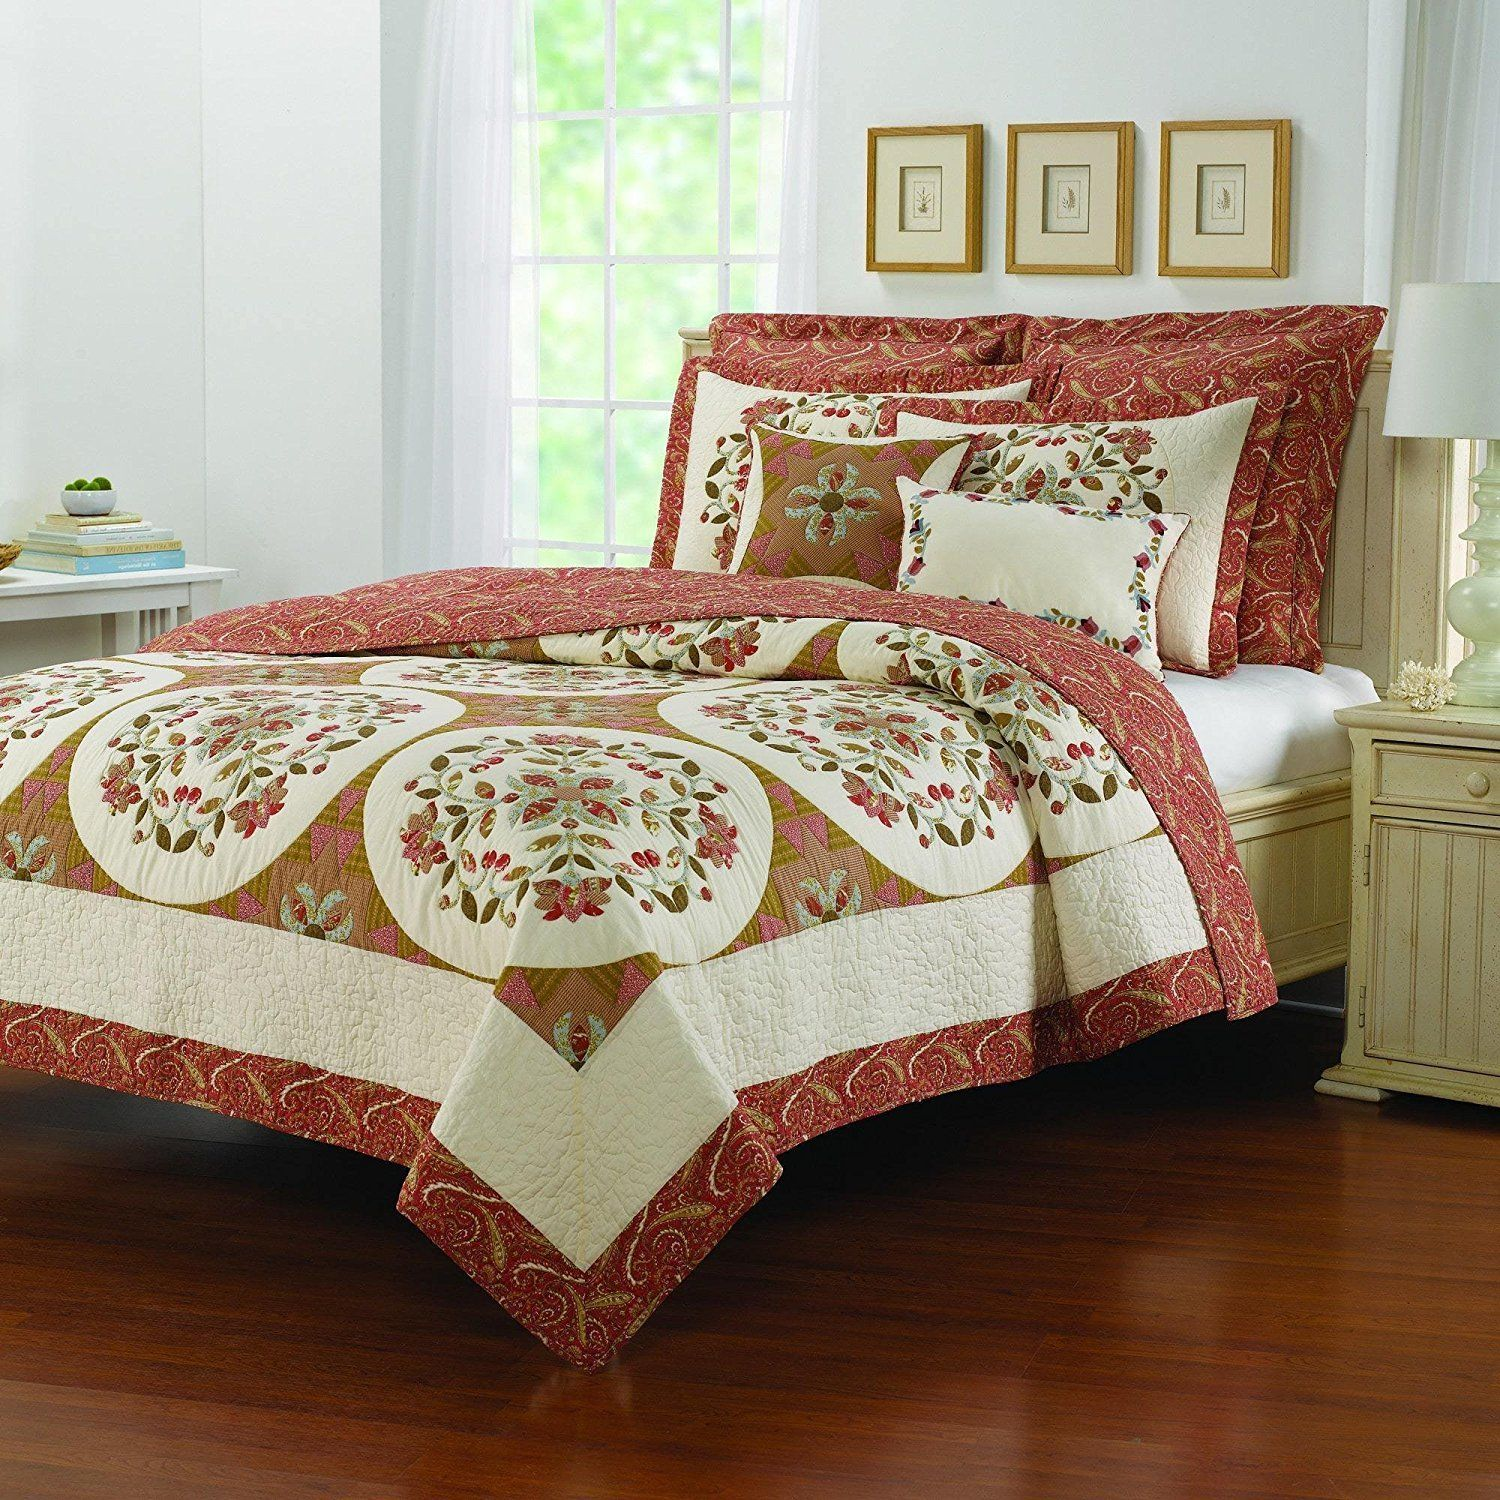 Dark Brown Twin Floral Medallion Paisley Quilt Golden Patterned Shabby Chic Printed Teen Bedding Kids Bedroom